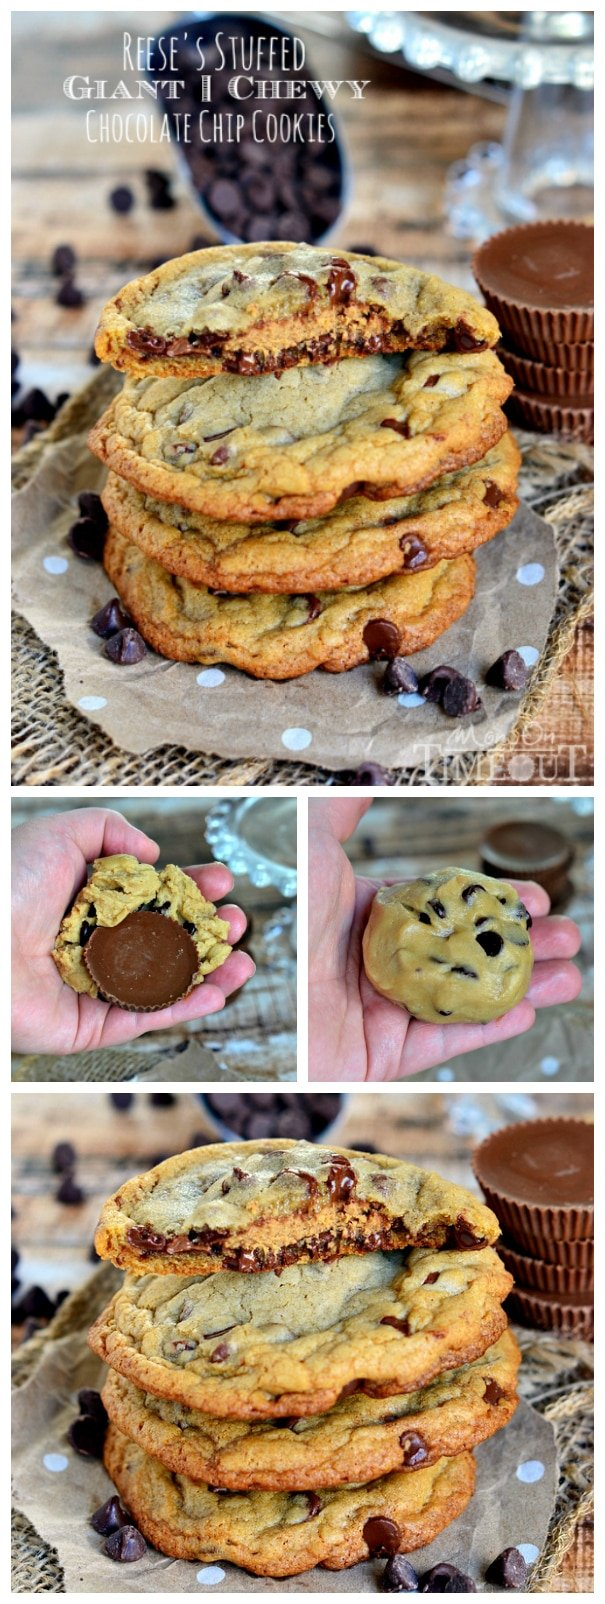 Reese's Stuffed Giant Chewy Chocolate Chip Cookies